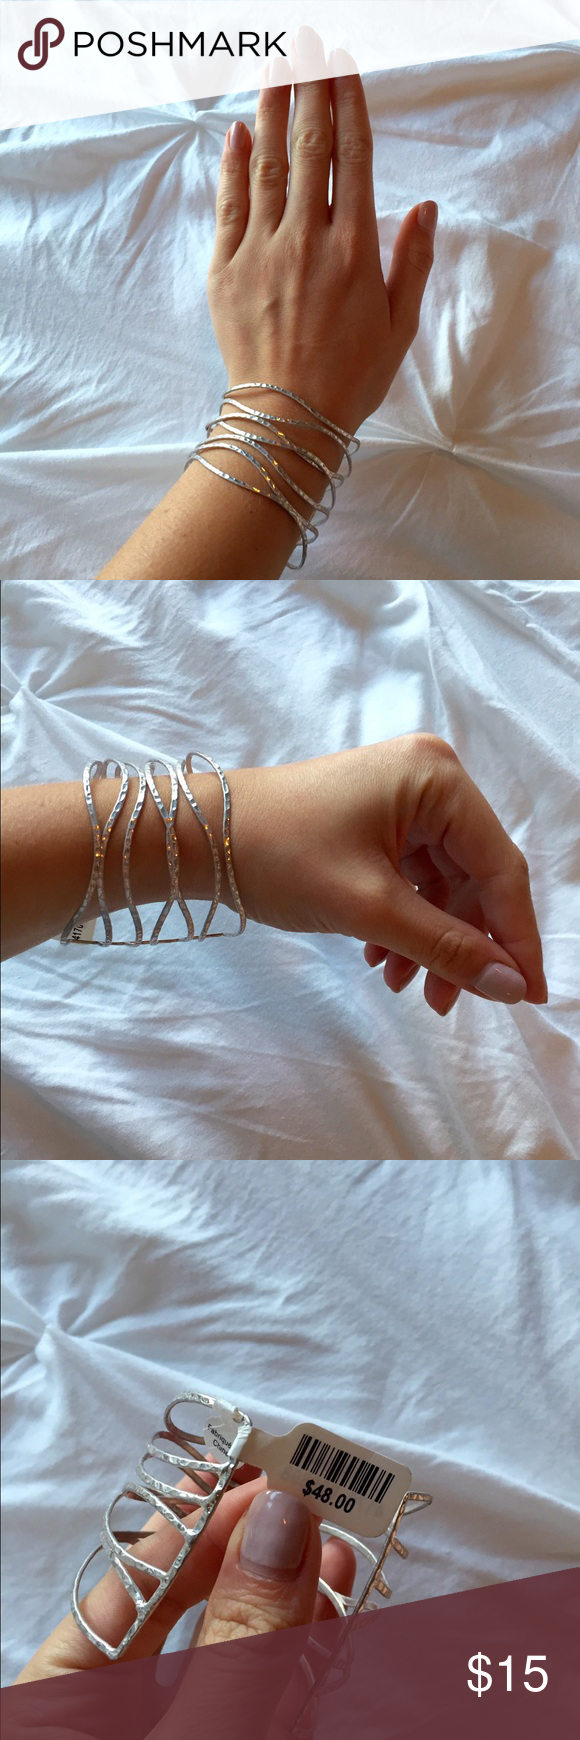 Anthropologie Silver Cage Bangle - Anthropologie Silver Caged Bangle.                     -Hammered metal detail -Gorgeous overlapping wave design over the entirety of the bracelet  -Flexible metal design can fit any wrist  -Brand new never worn, tags attached Anthropologie Jewelry Bracelets